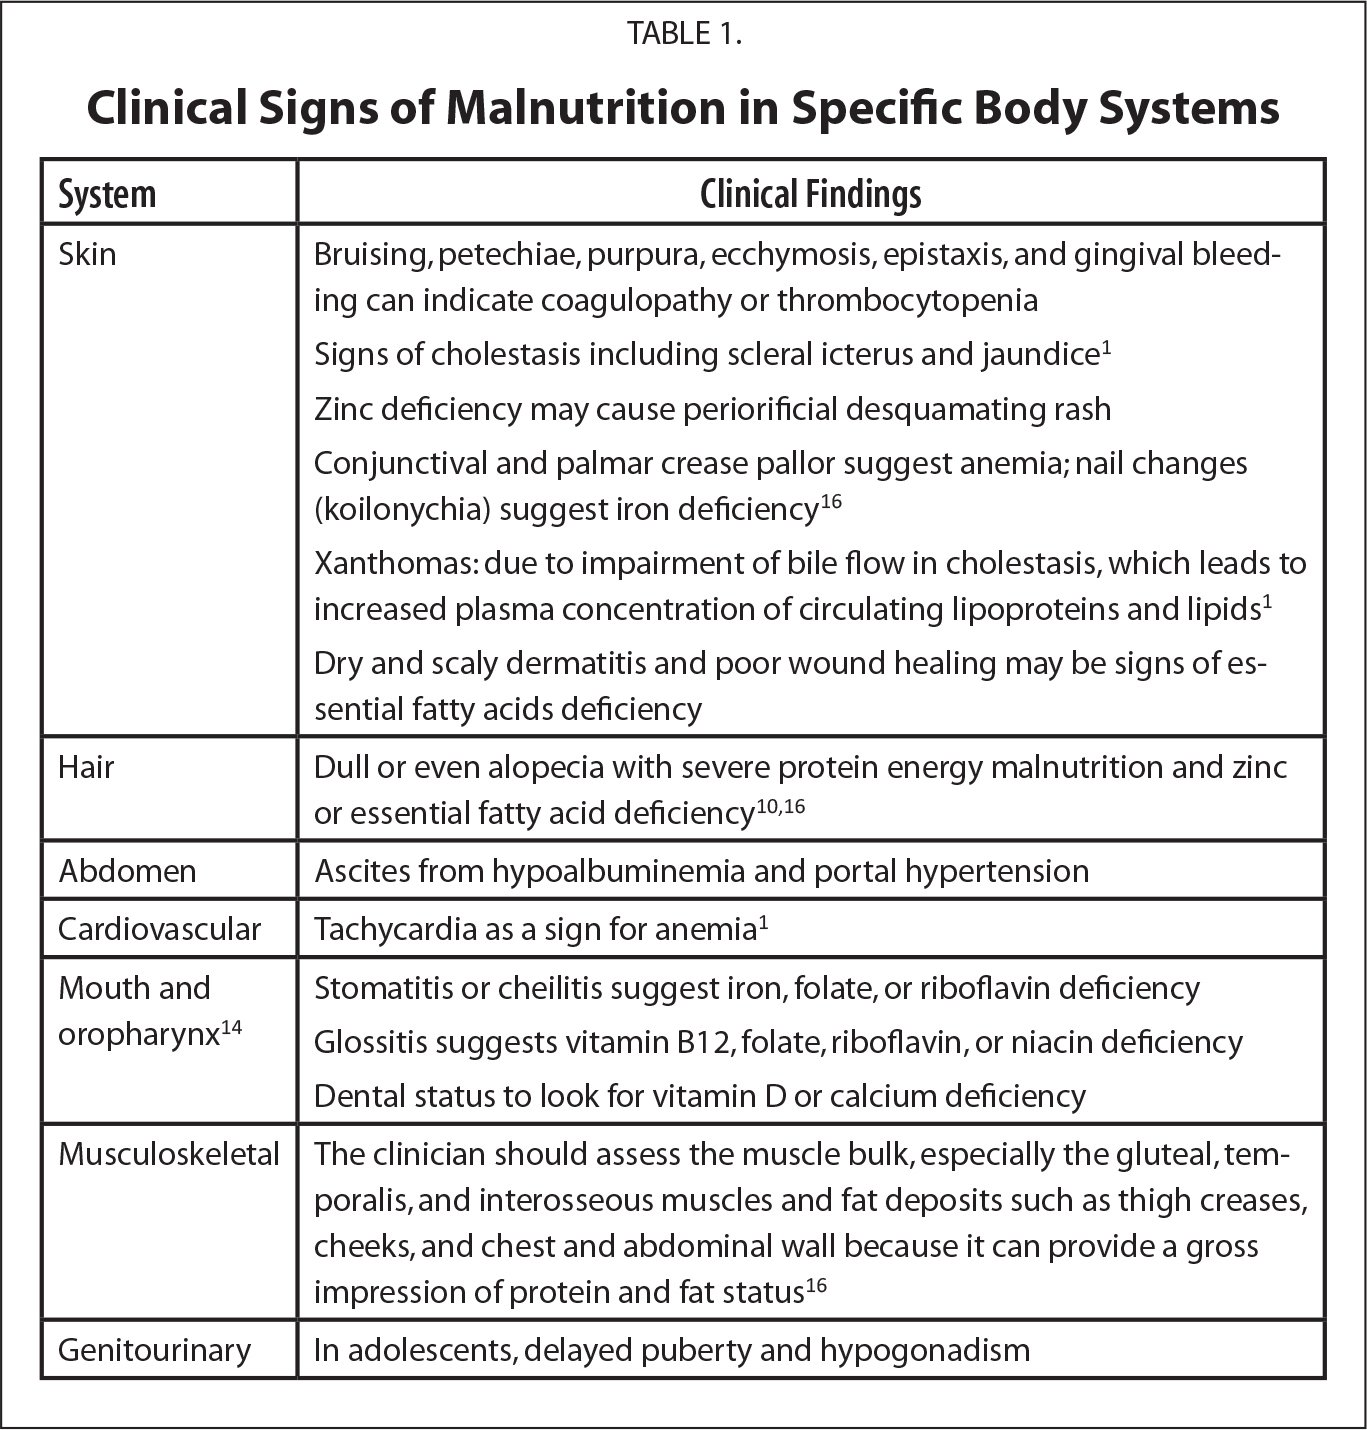 Clinical Signs of Malnutrition in Specific Body Systems